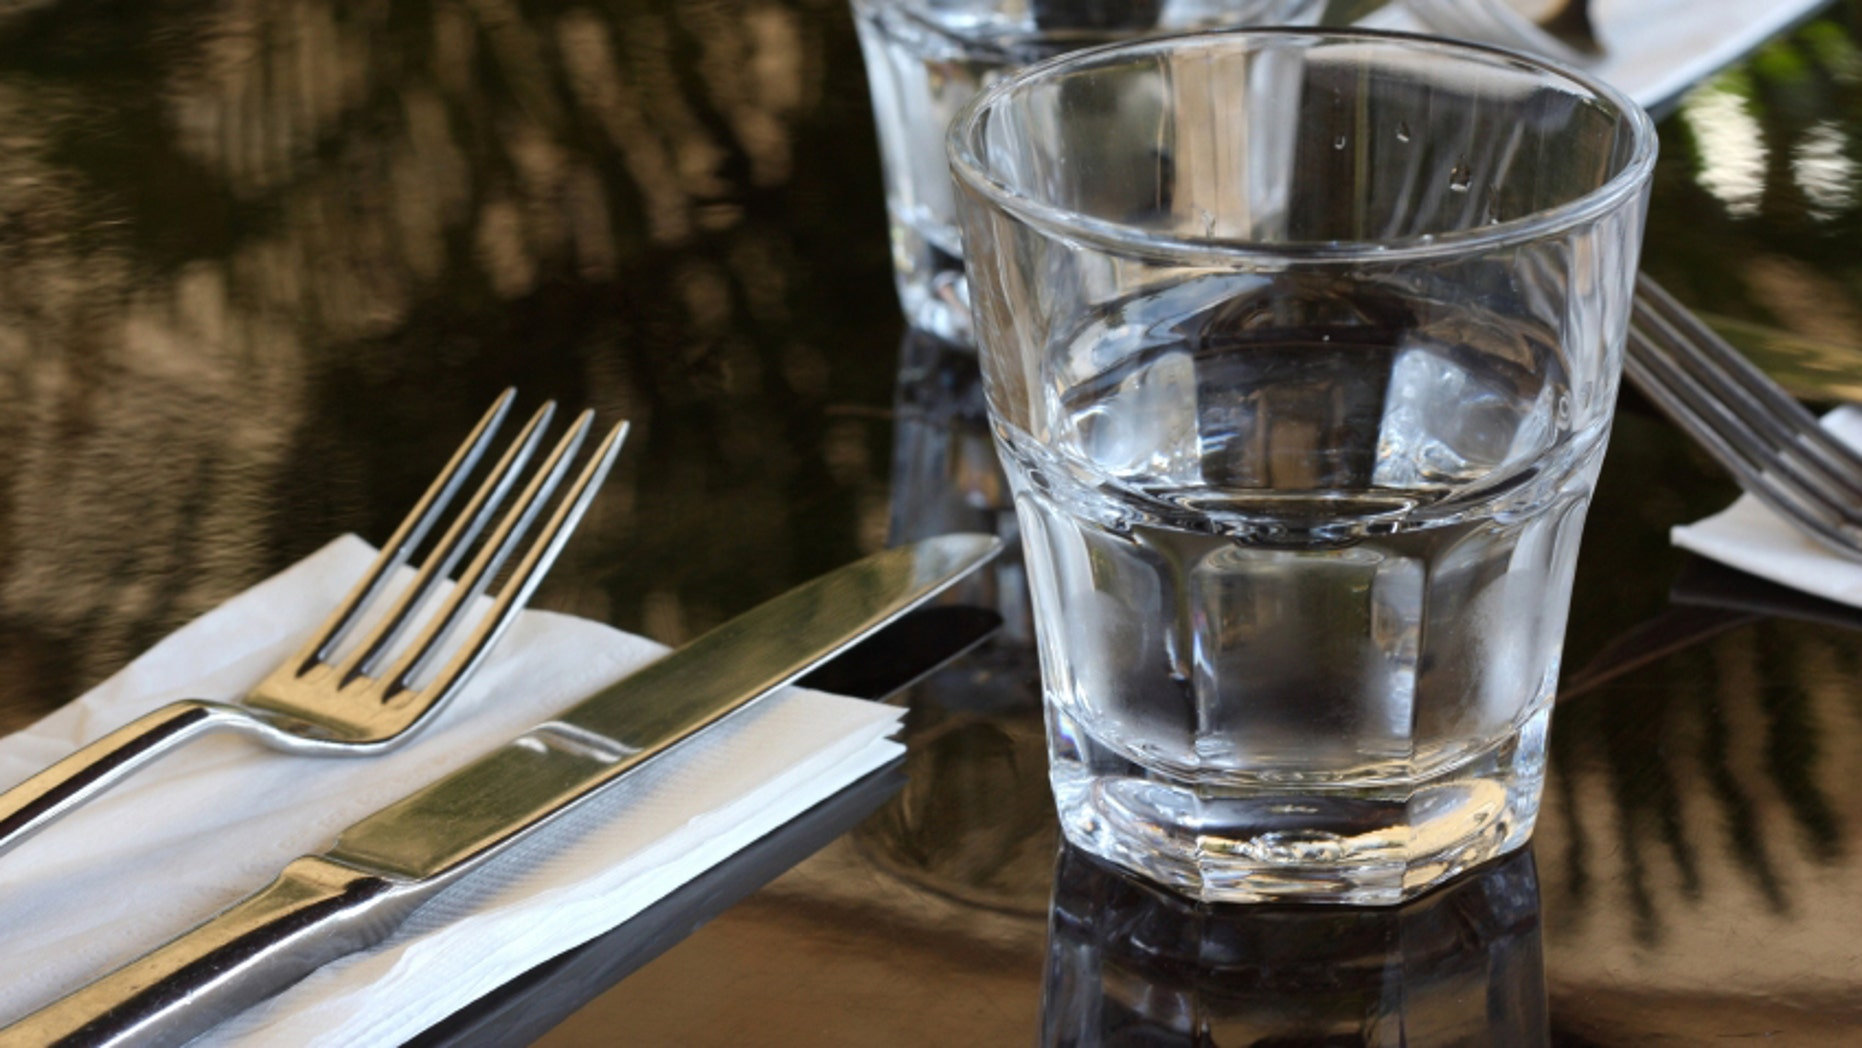 Get ready for empty water glasses at the table.